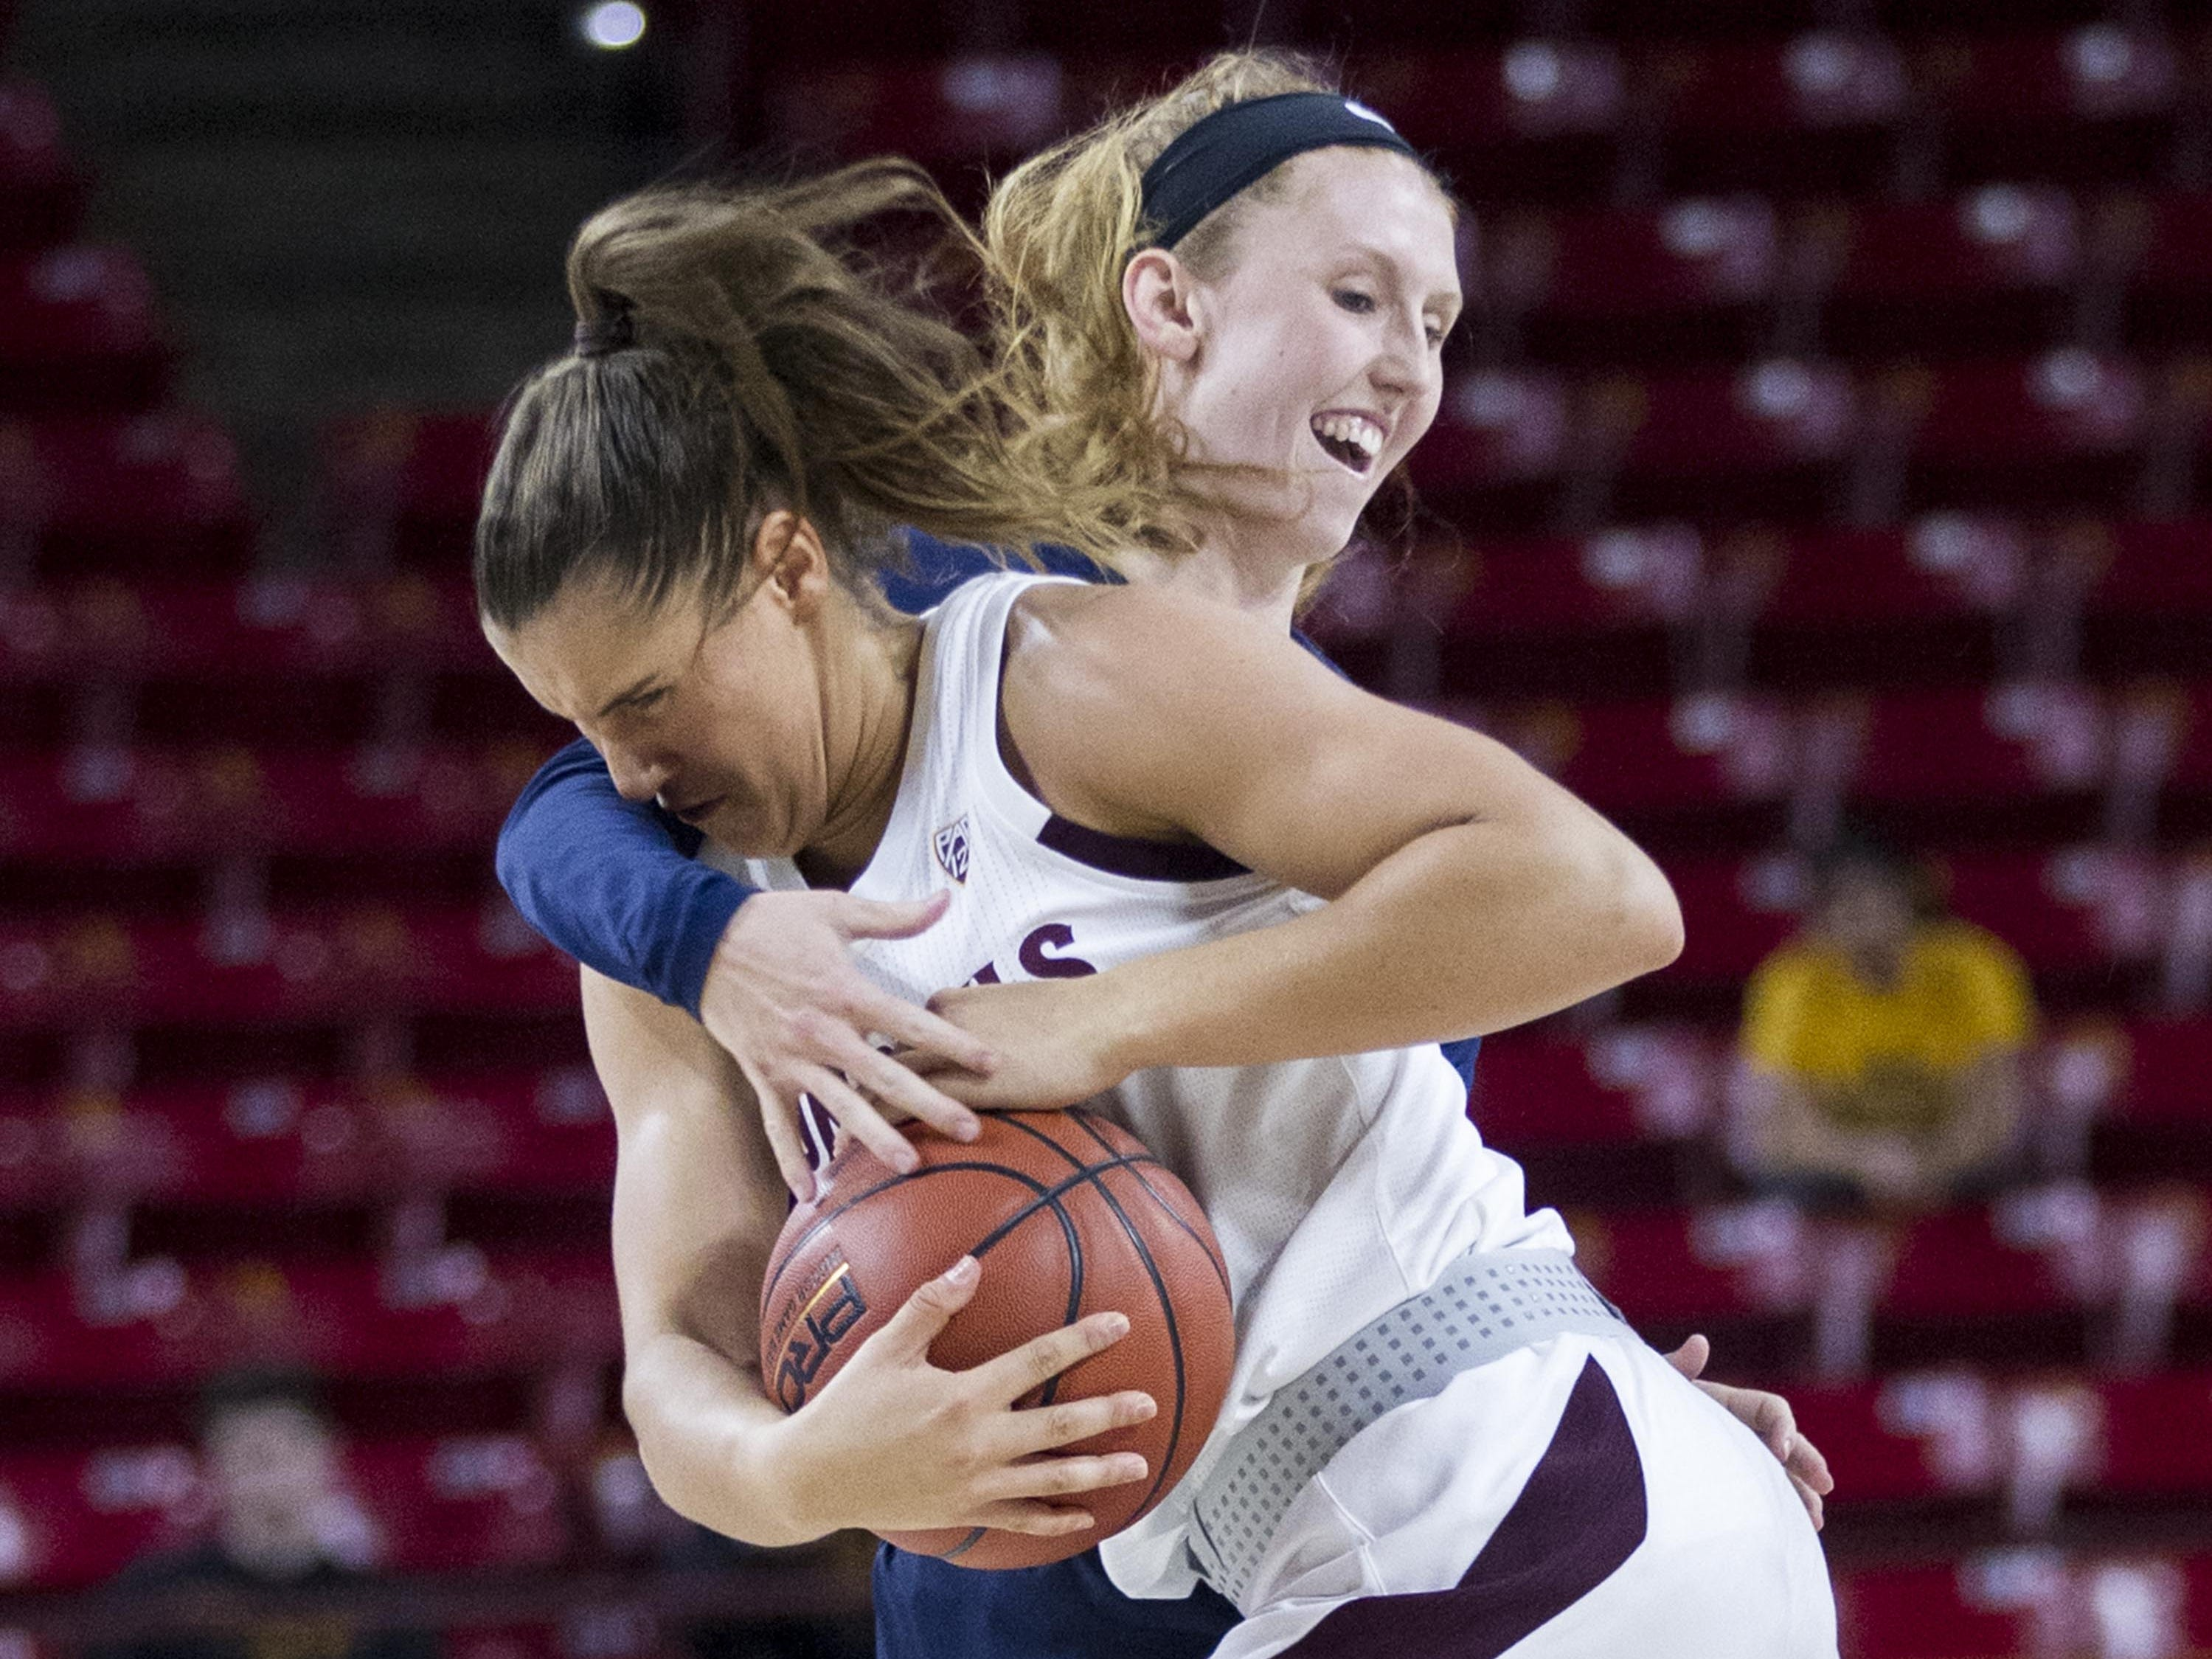 Arizona State's Taya Hanson (0)  gets fouled by Fresno State's Kristina Cavey (30)  in the second half of their game in Tempe, Thursday, Dec. 20, 2018.